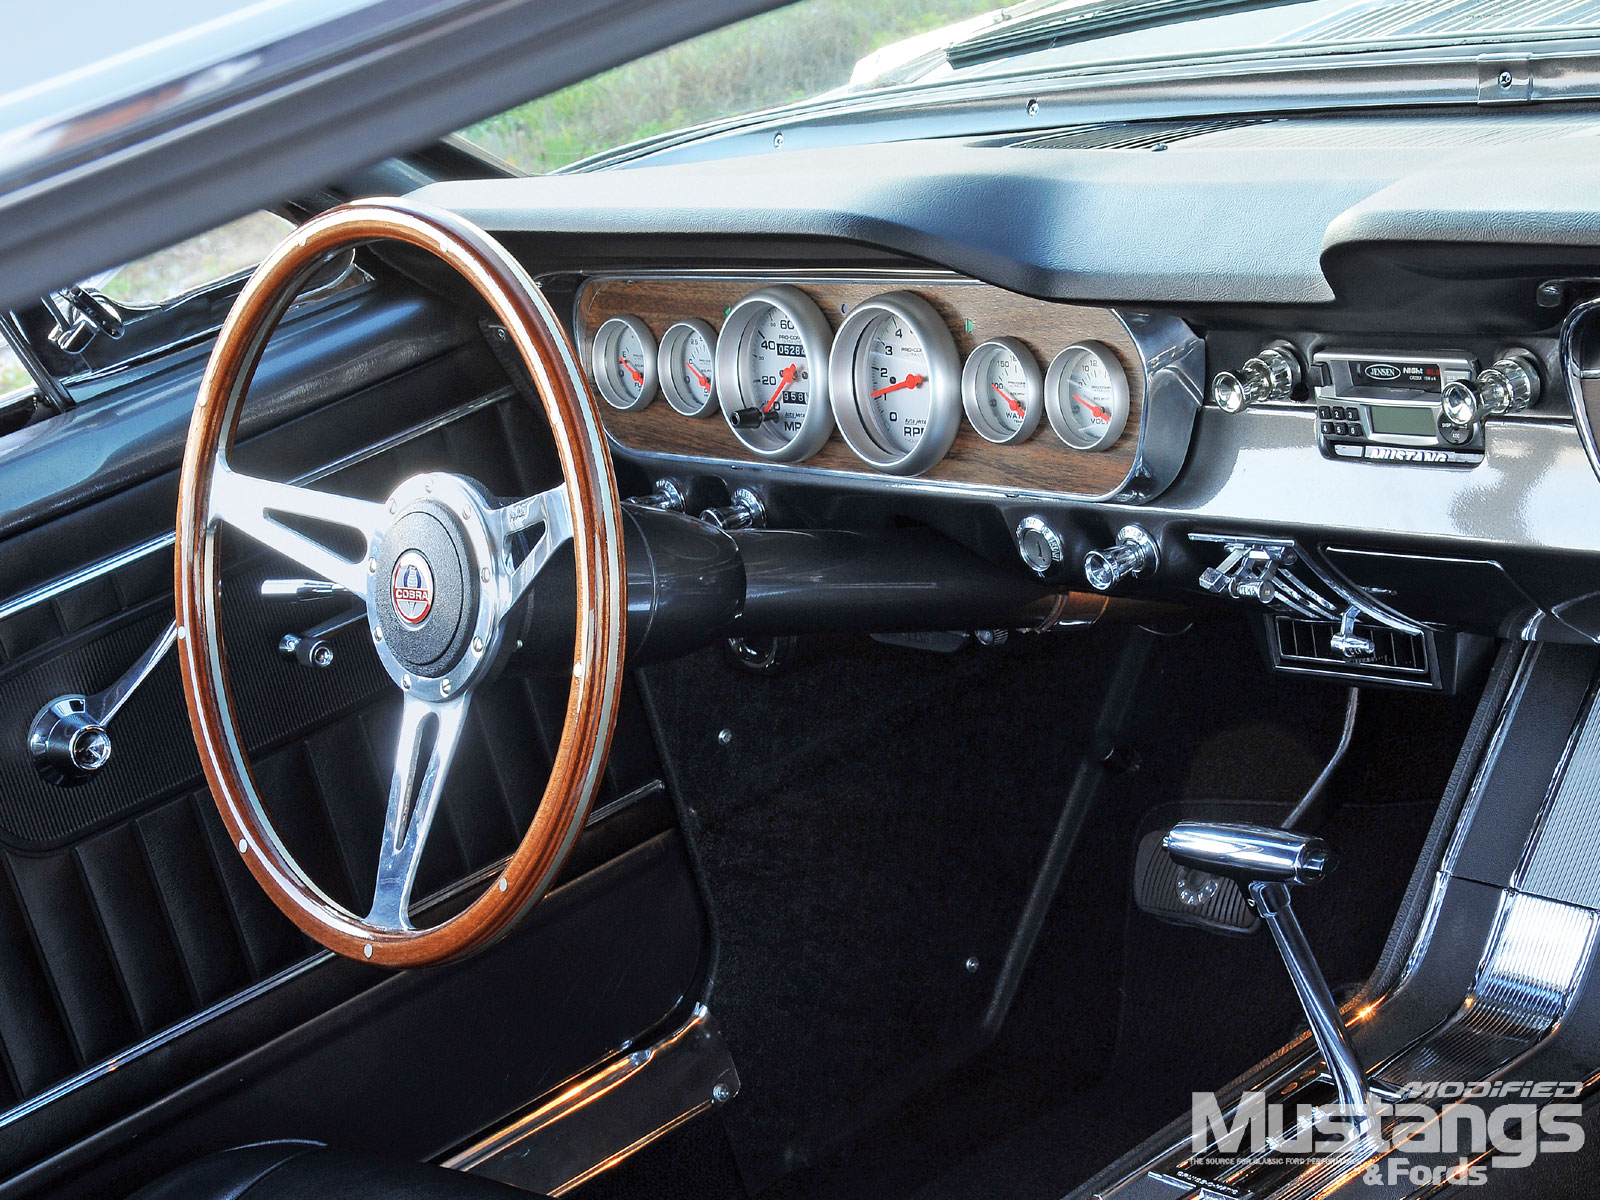 1964 Ford Mustang Pony Interior